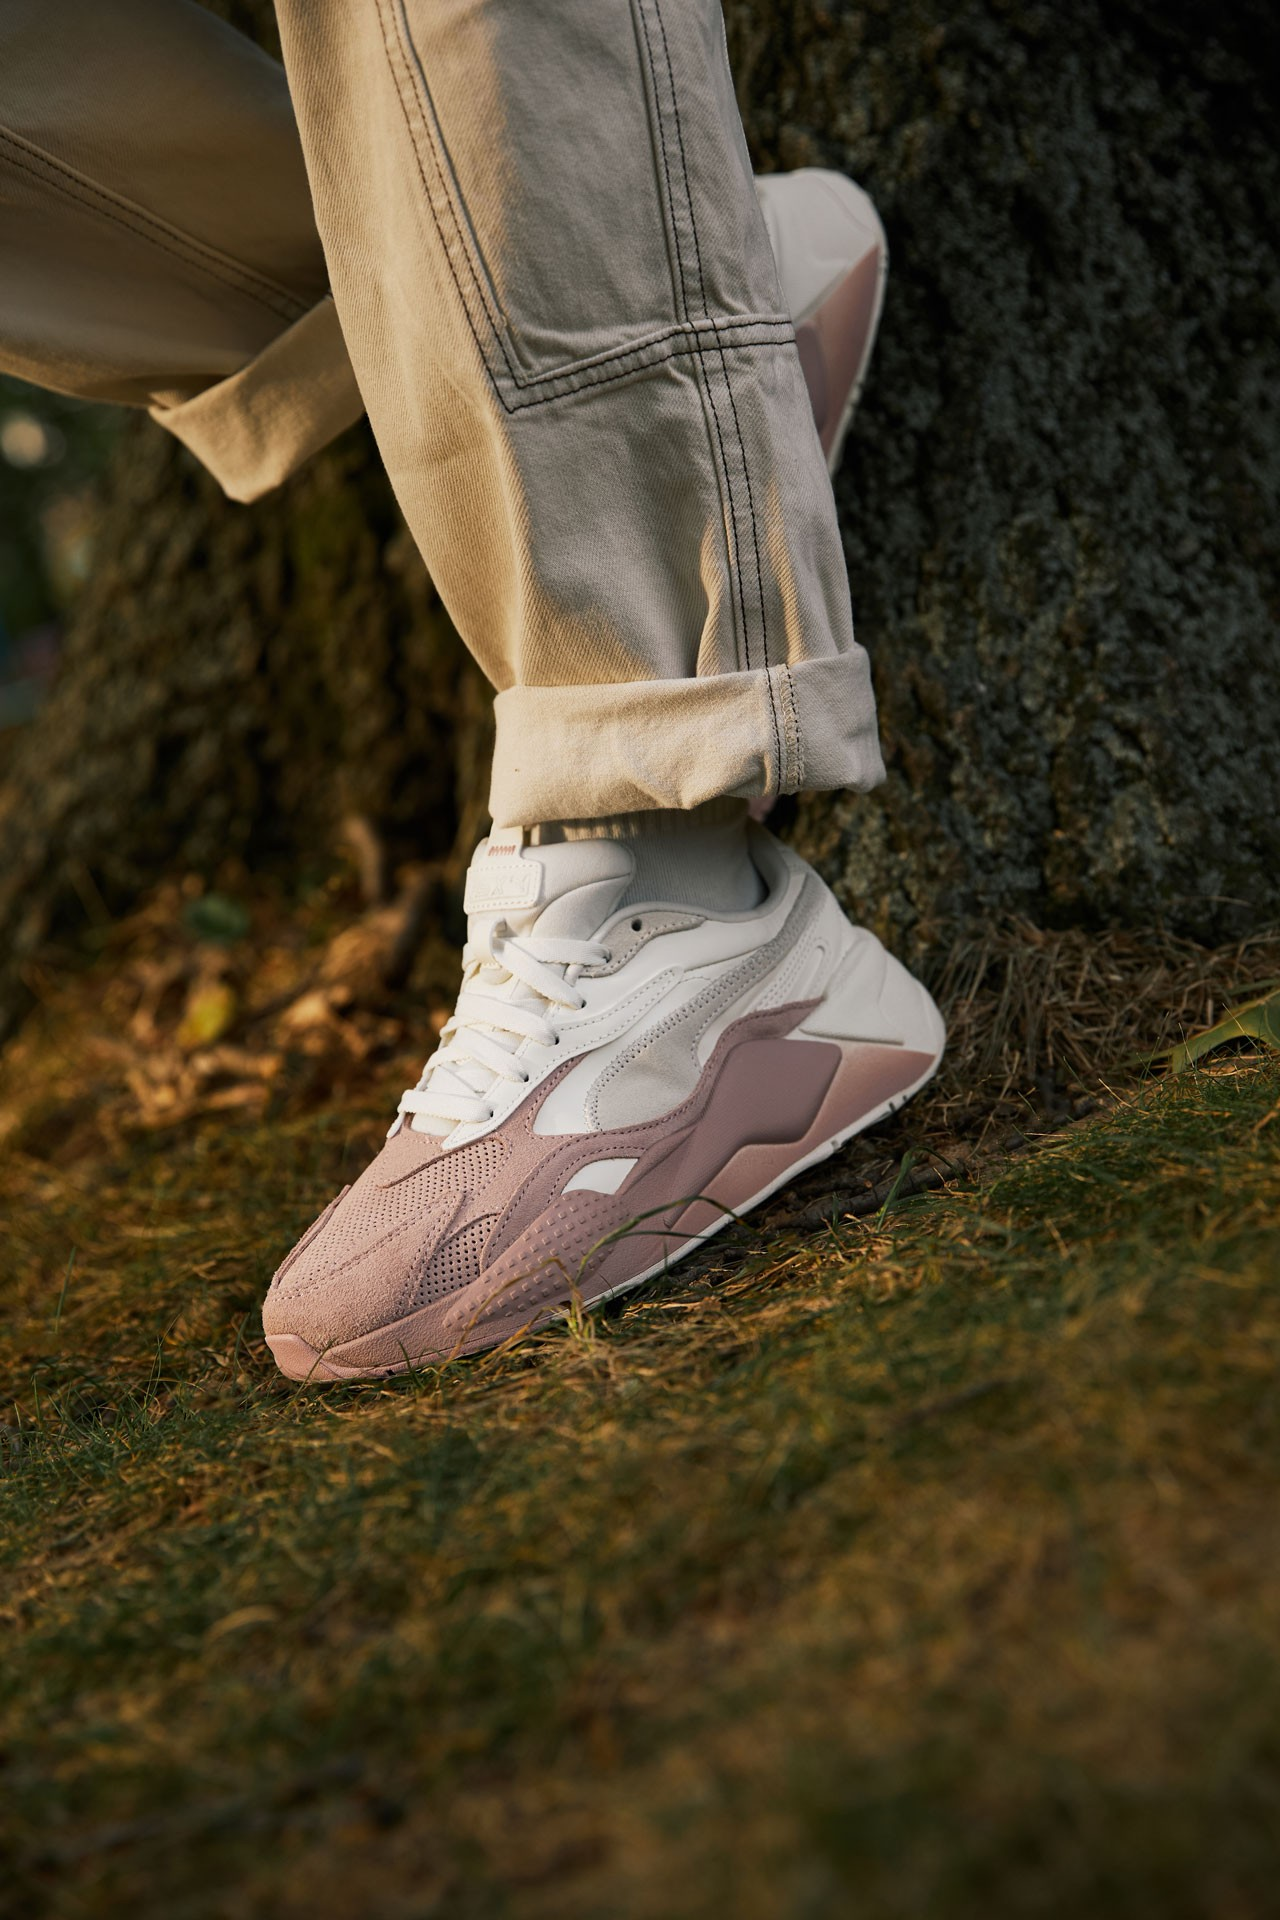 PUMA's classic rubber sole and branding at the tongue and heel RS cushioning formstrike color bold mesh synthetic upper